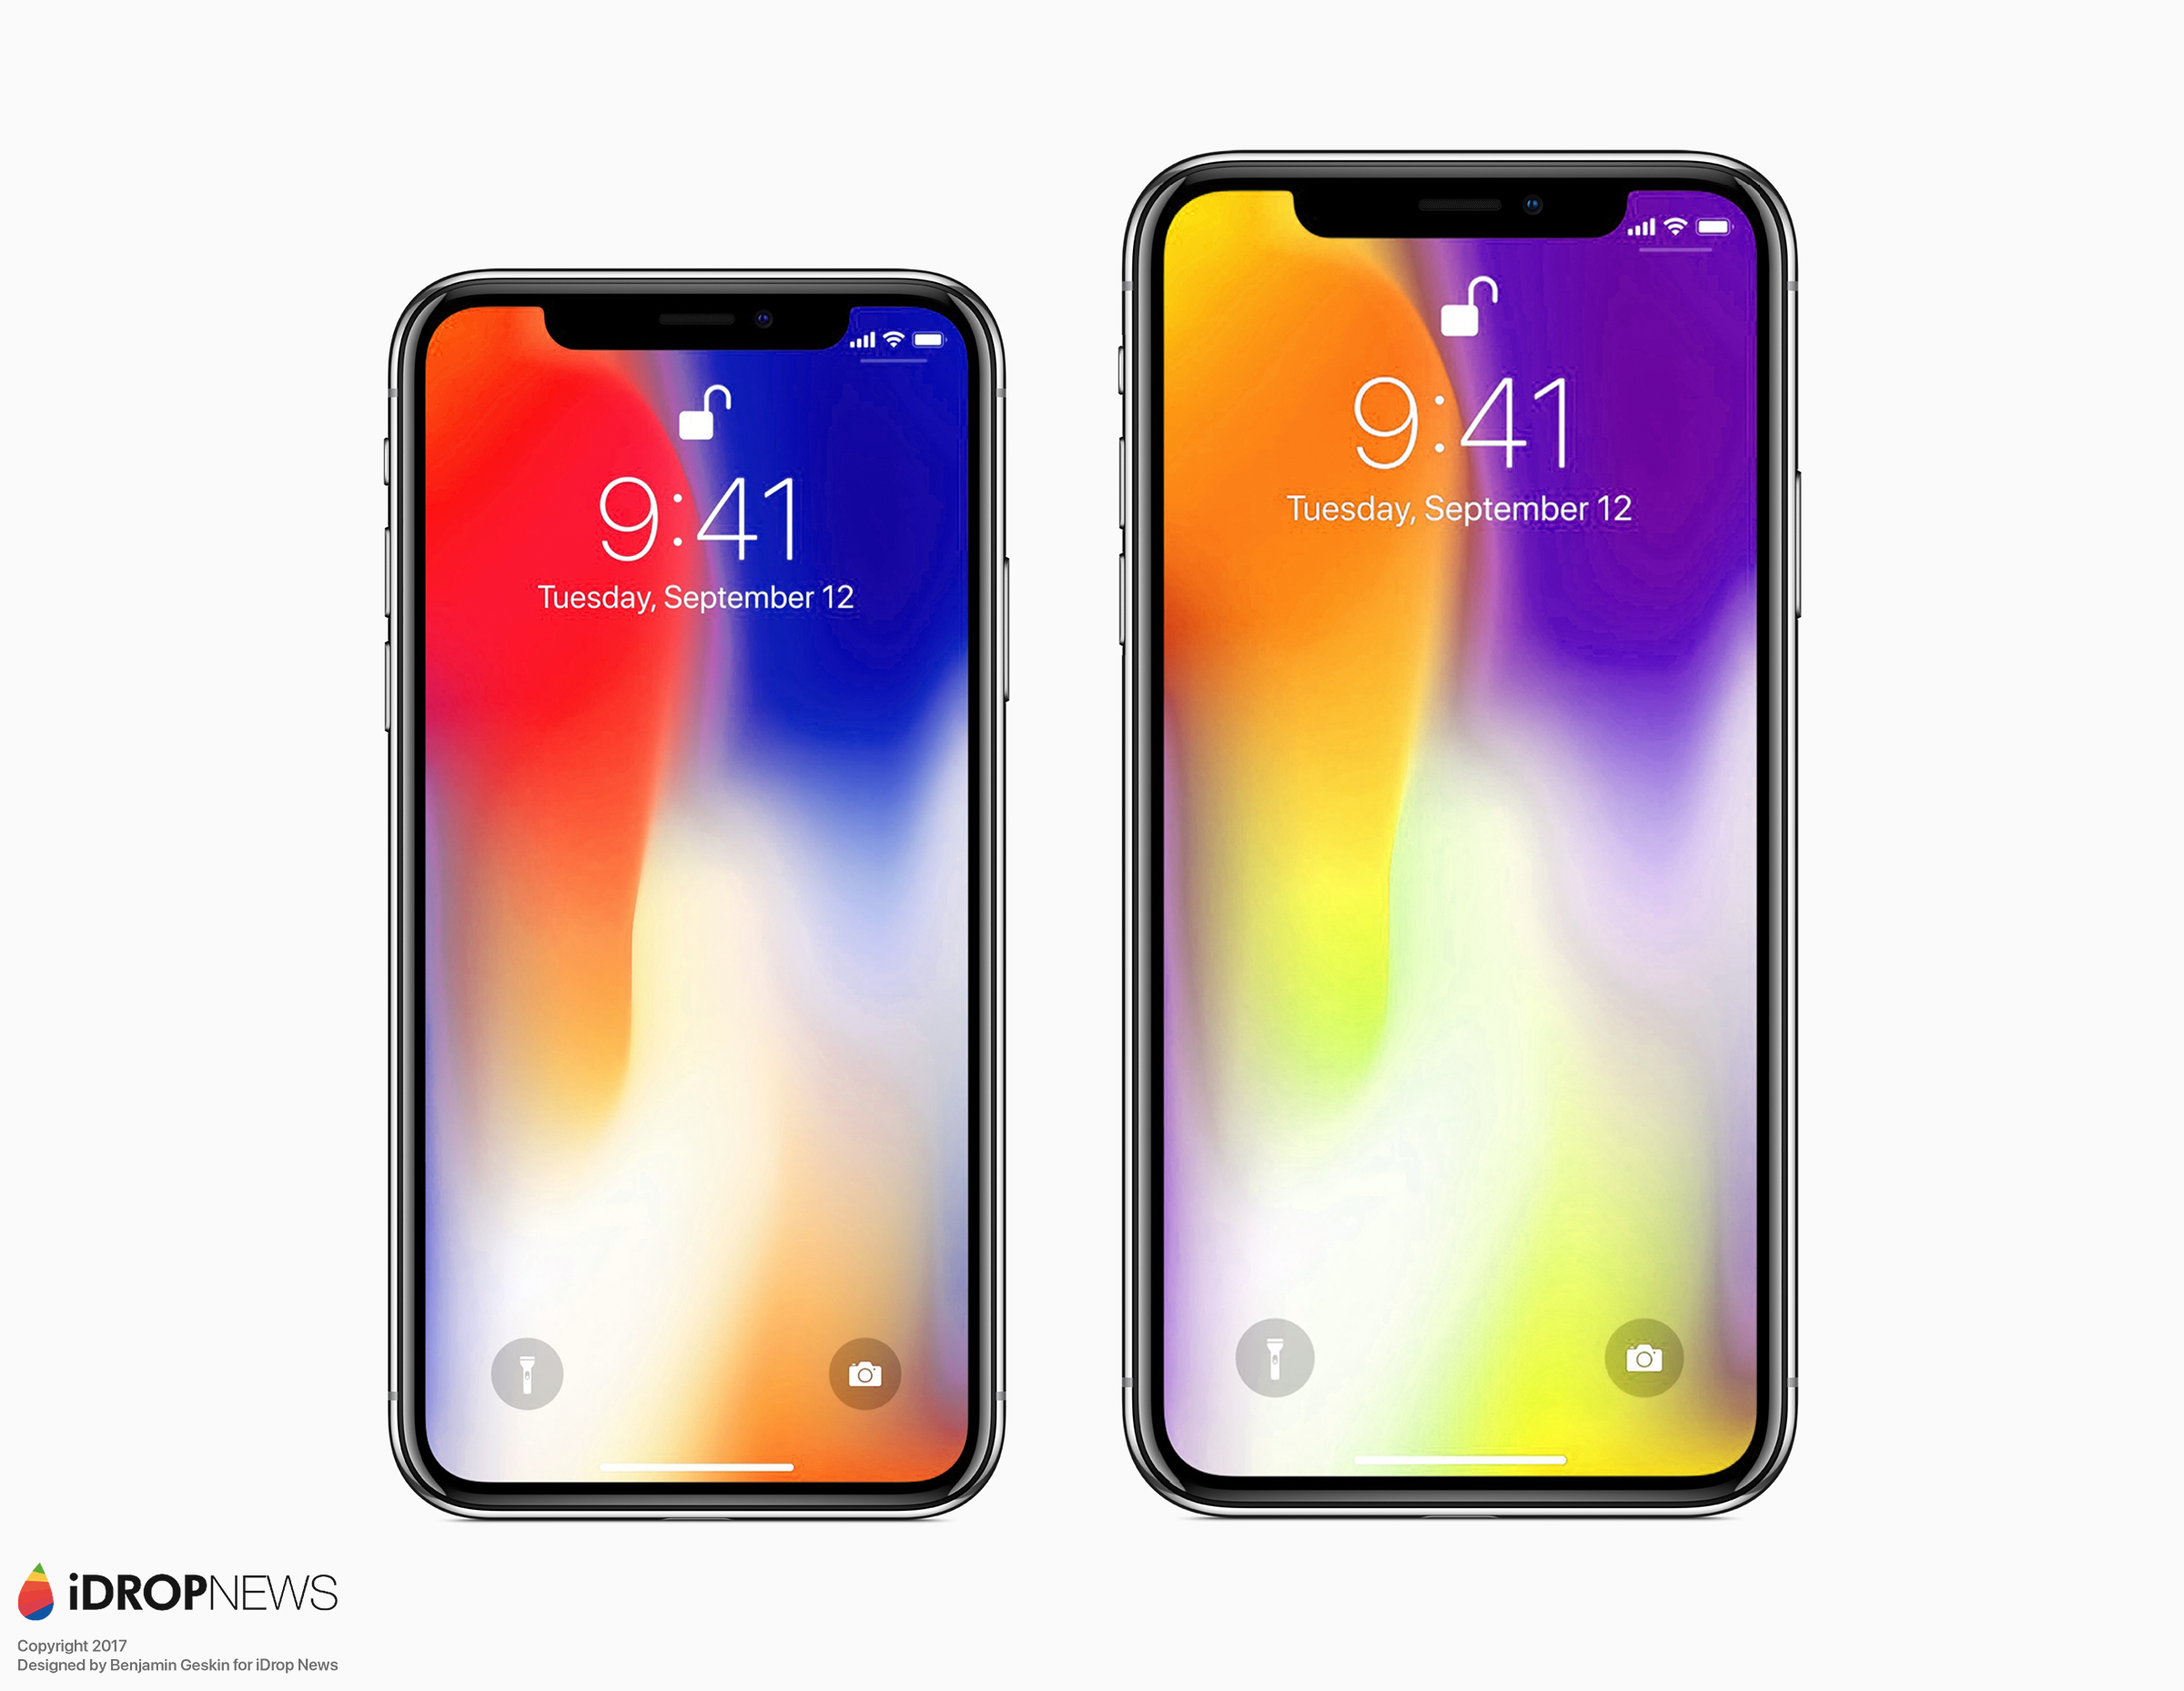 iPhone X Plus iDropNews 6